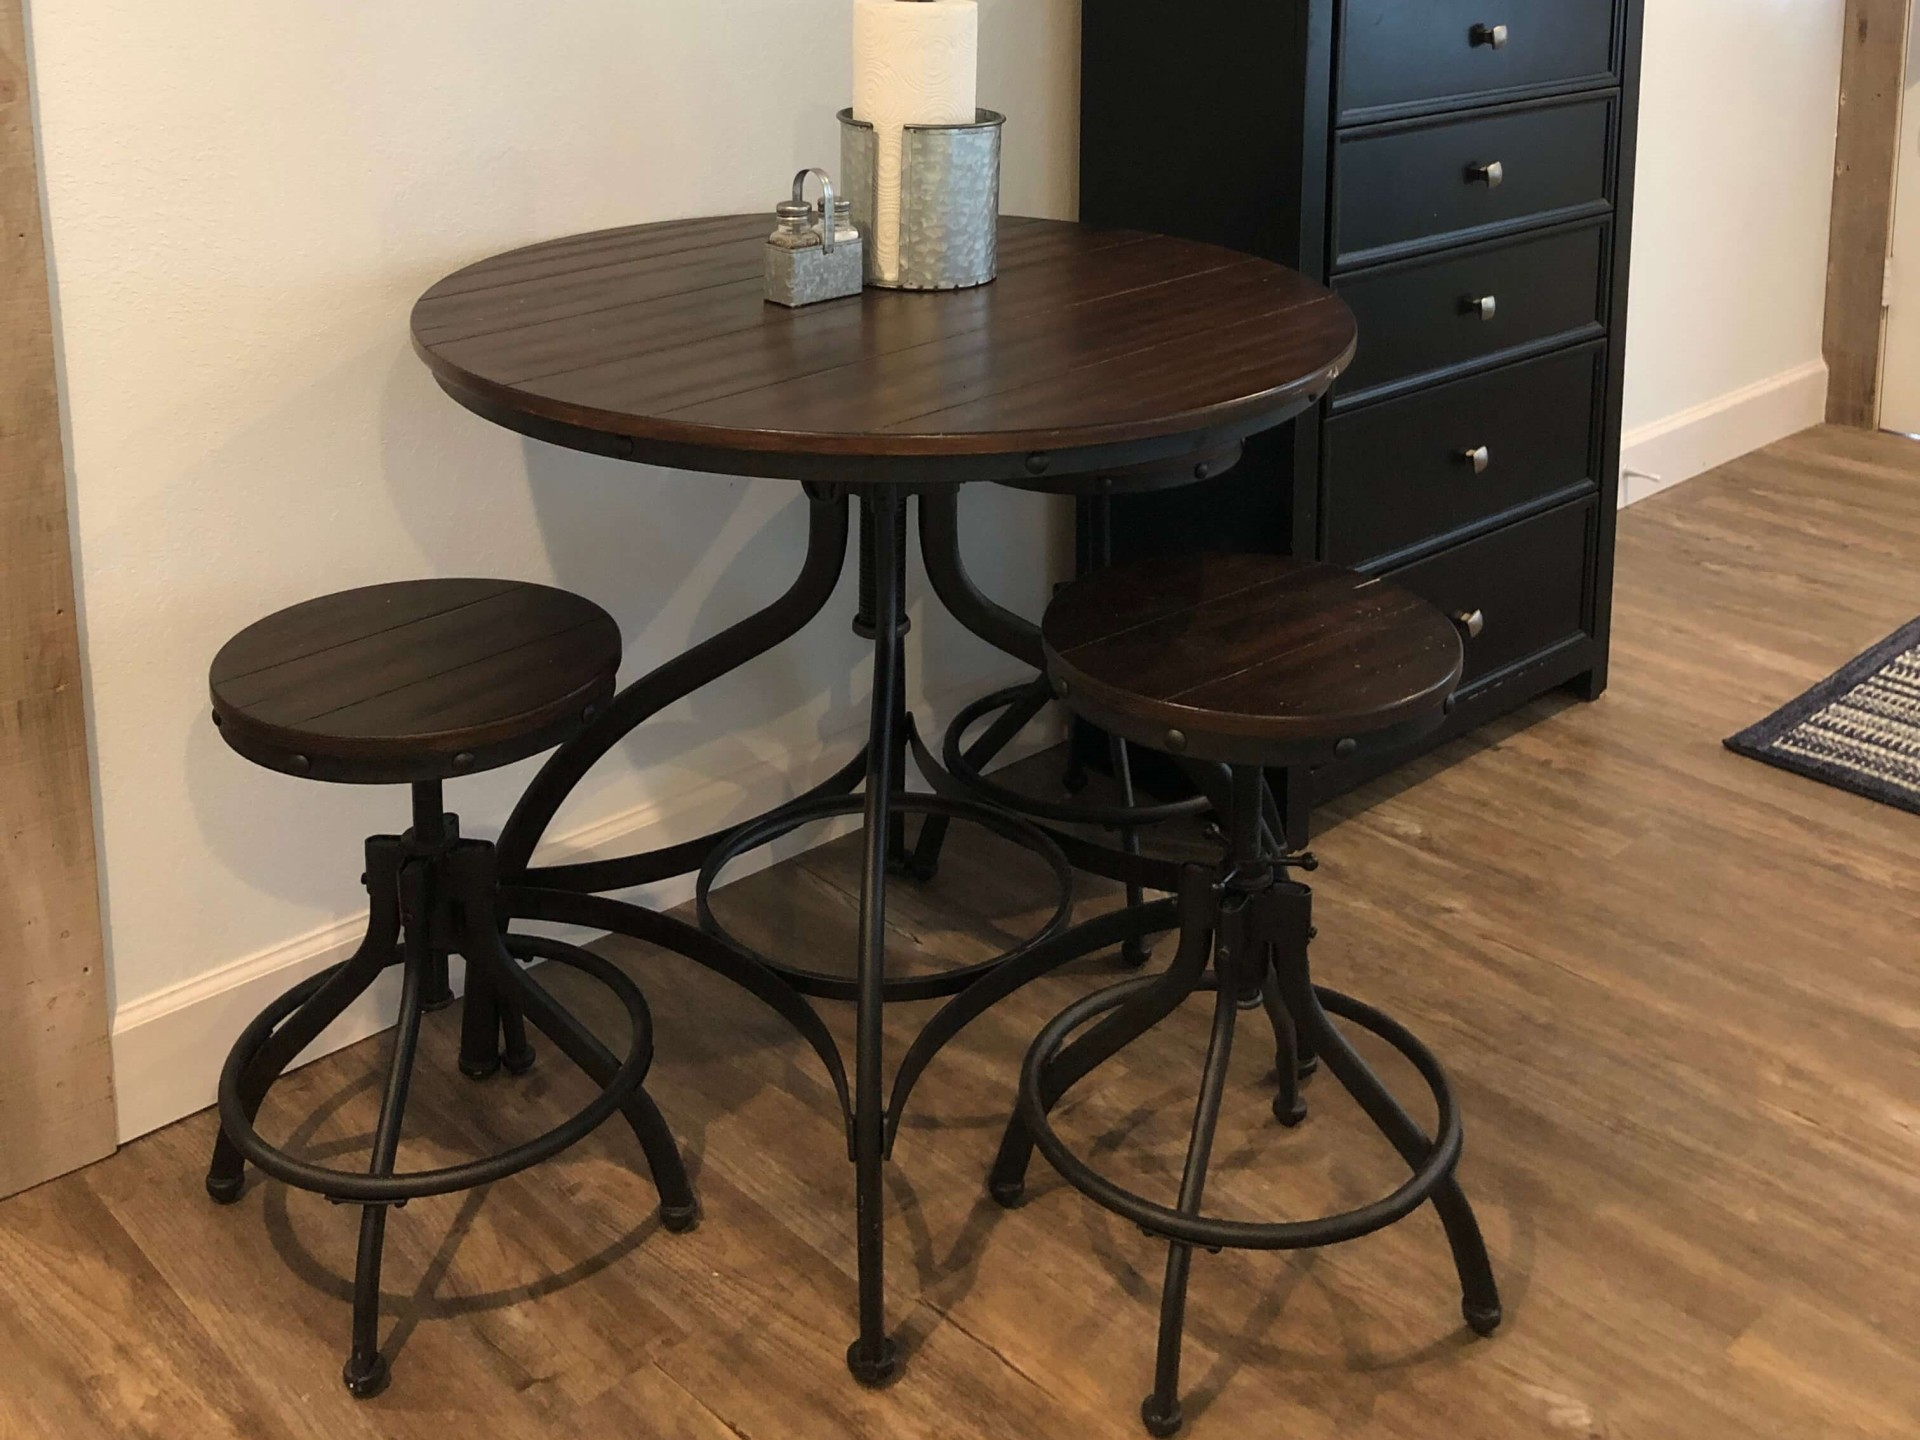 Dining Seating for 4